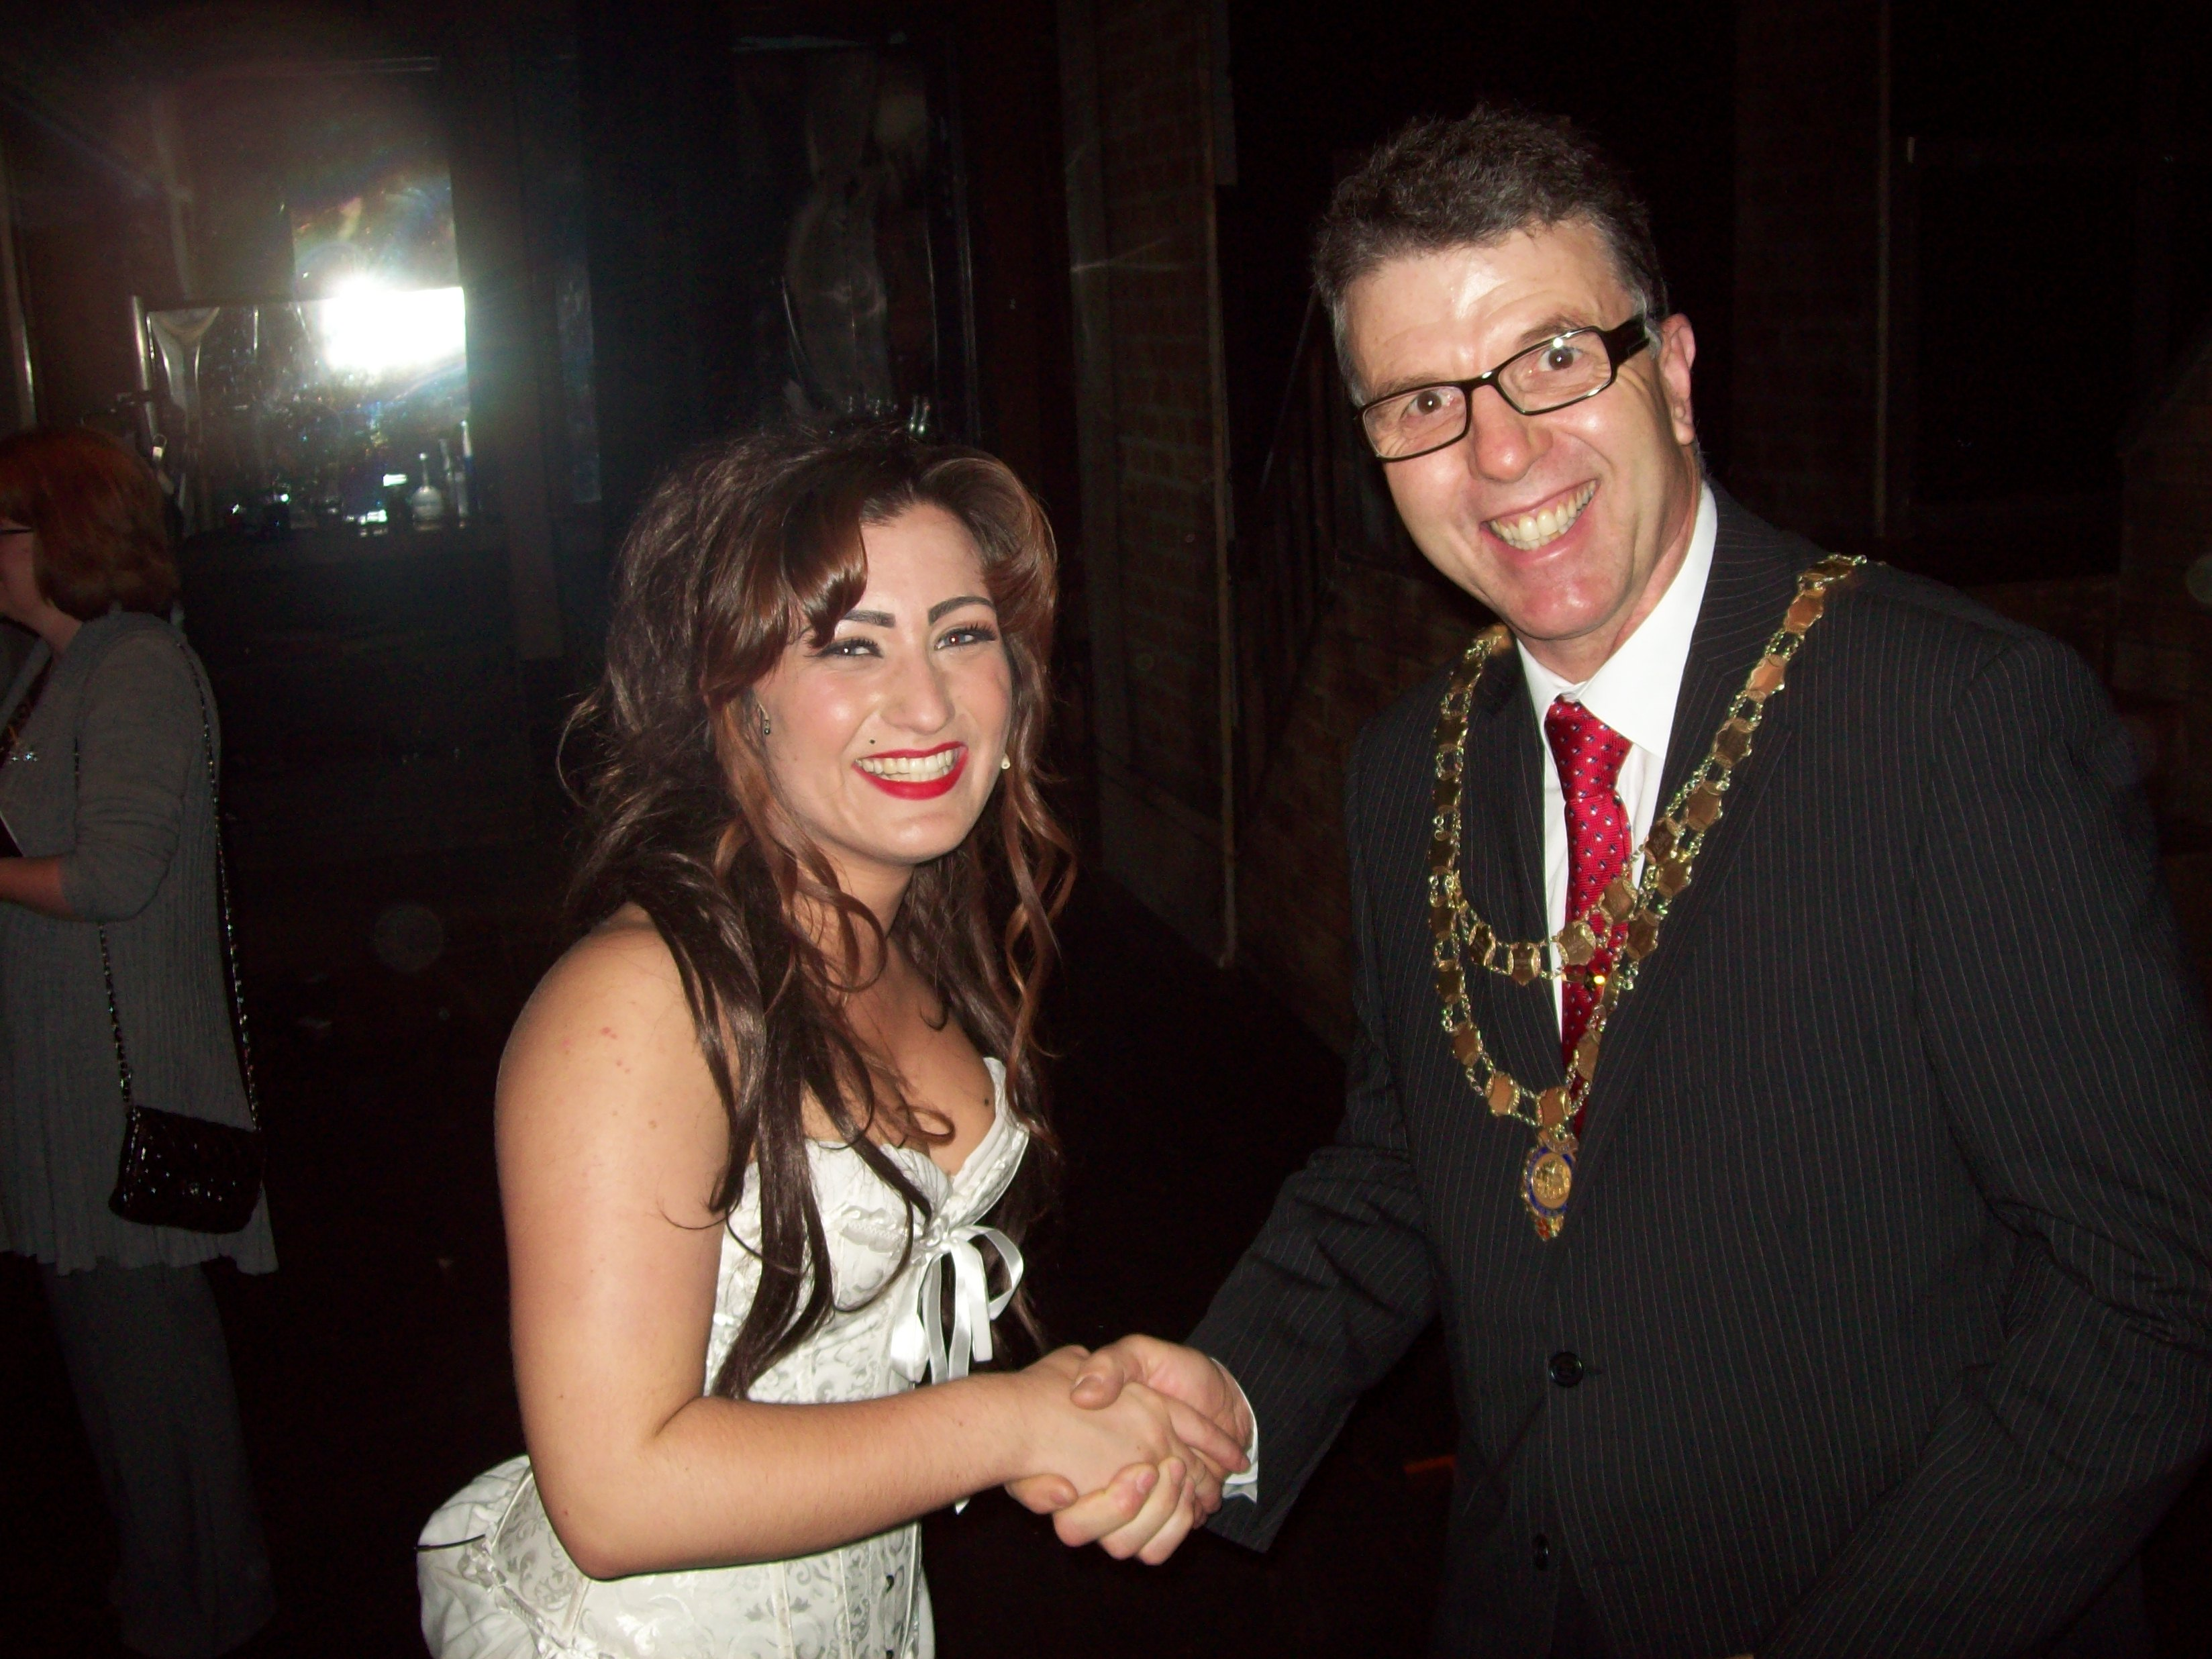 Mayor of Maghull Cllr Steve Kermode congratulates actress Lucy Harris following her performance.